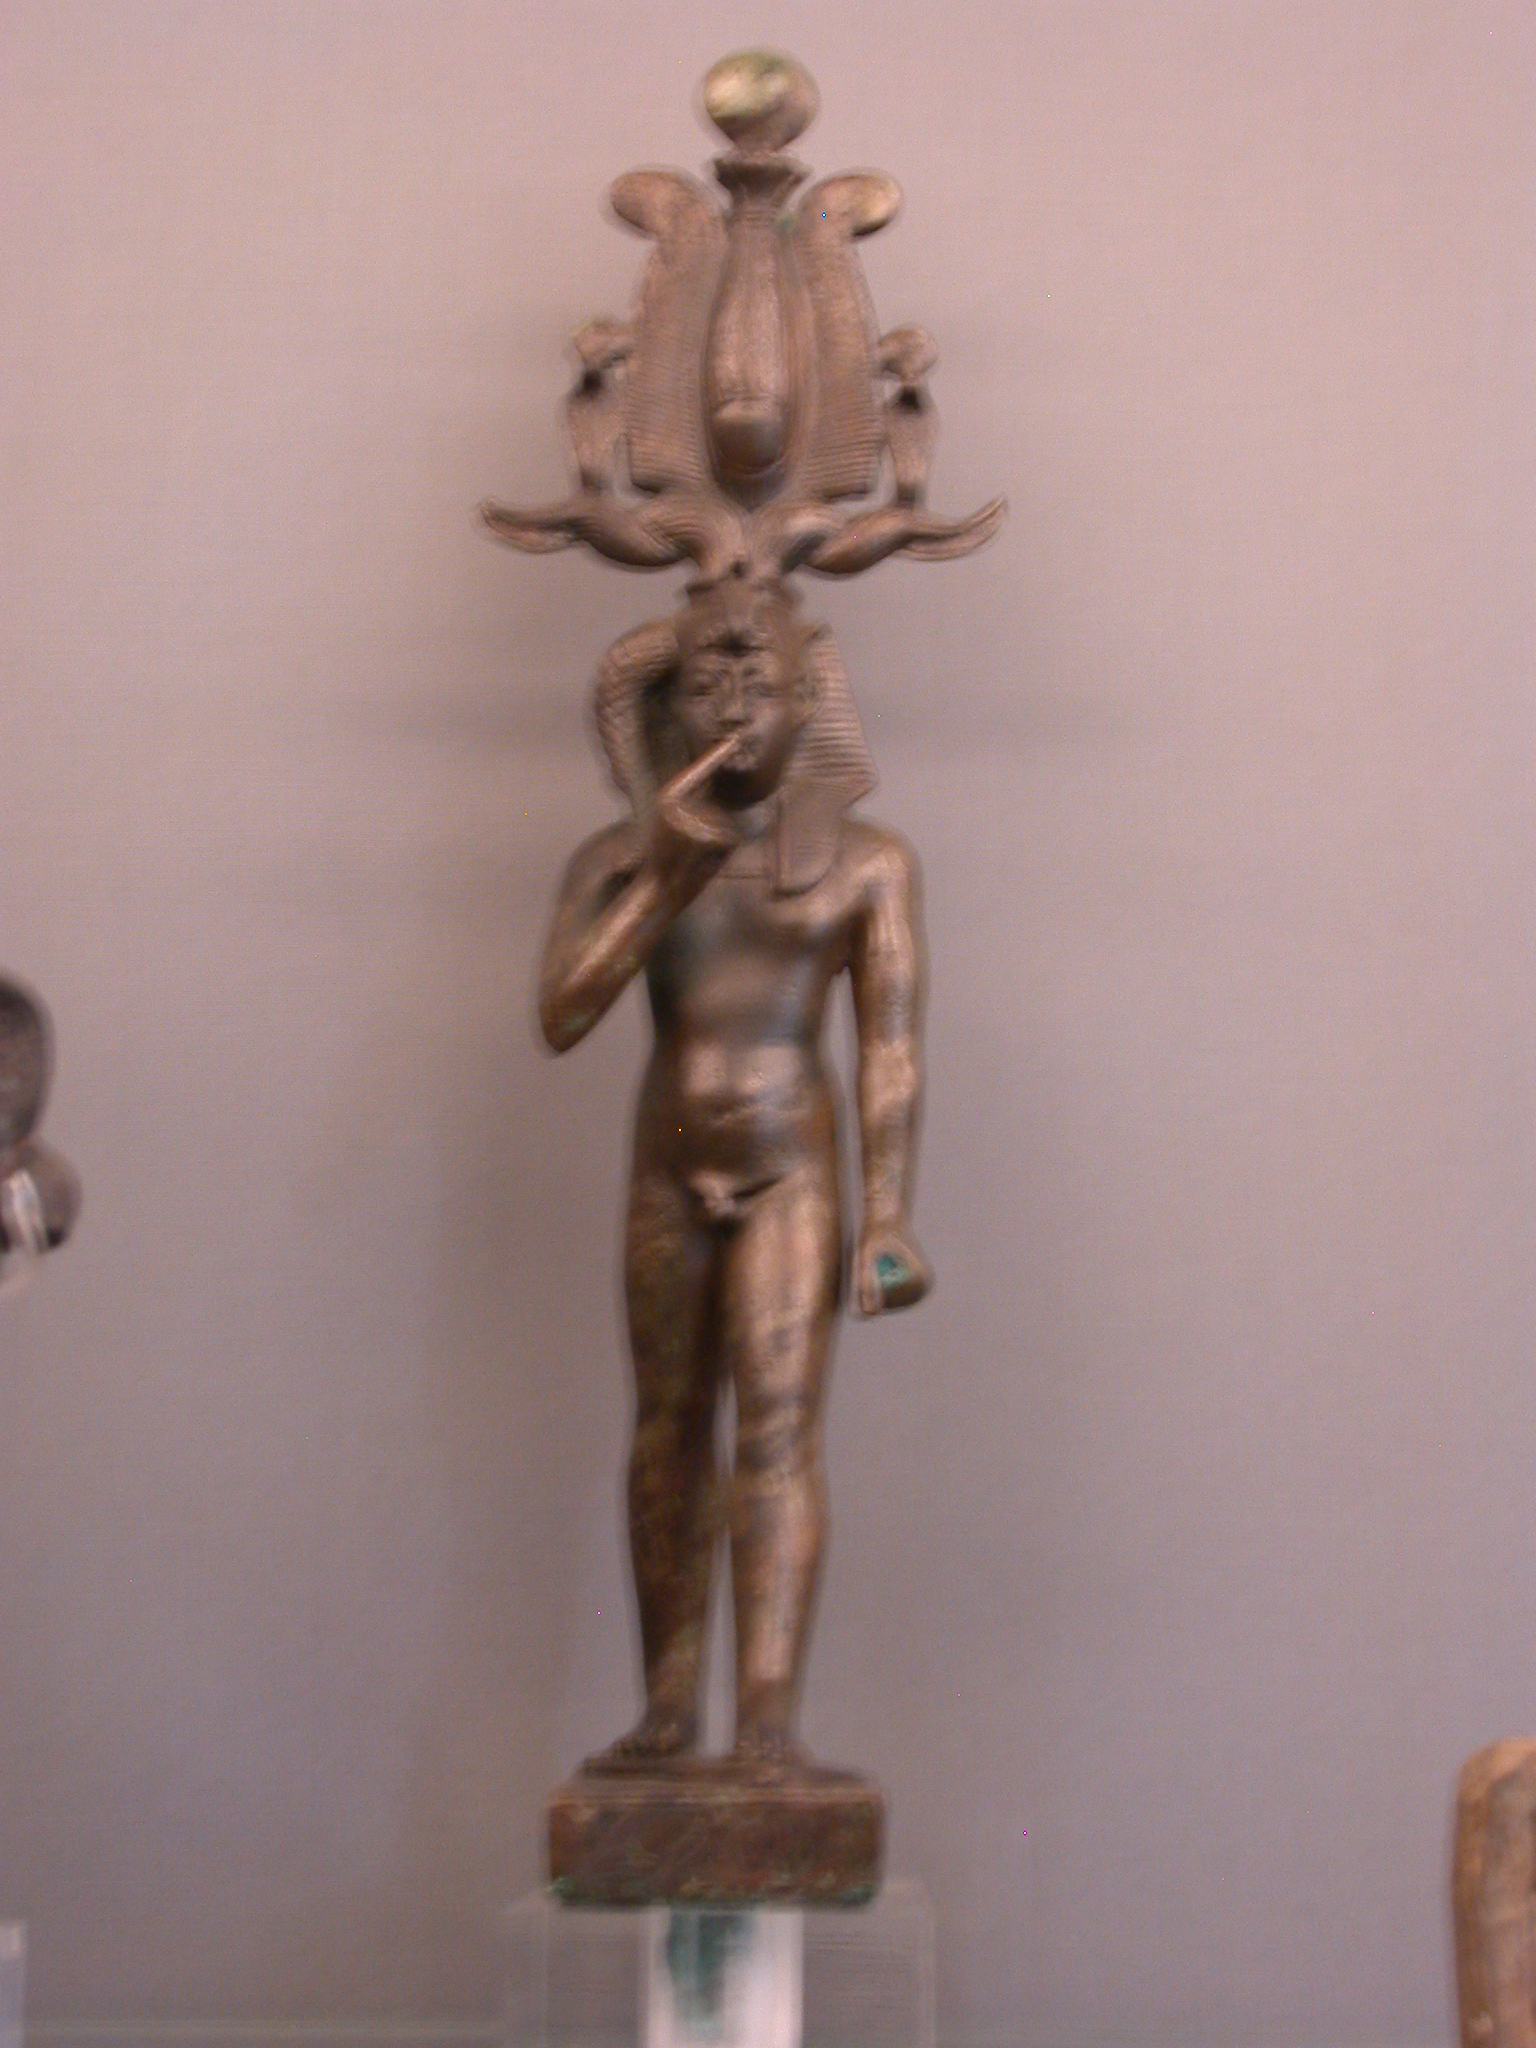 Horus Standing on Oryx, Dedicated by a Priest of Amun, About 200-100 BCE, Egypt, in Fitzwilliam Museum, Cambridge, England